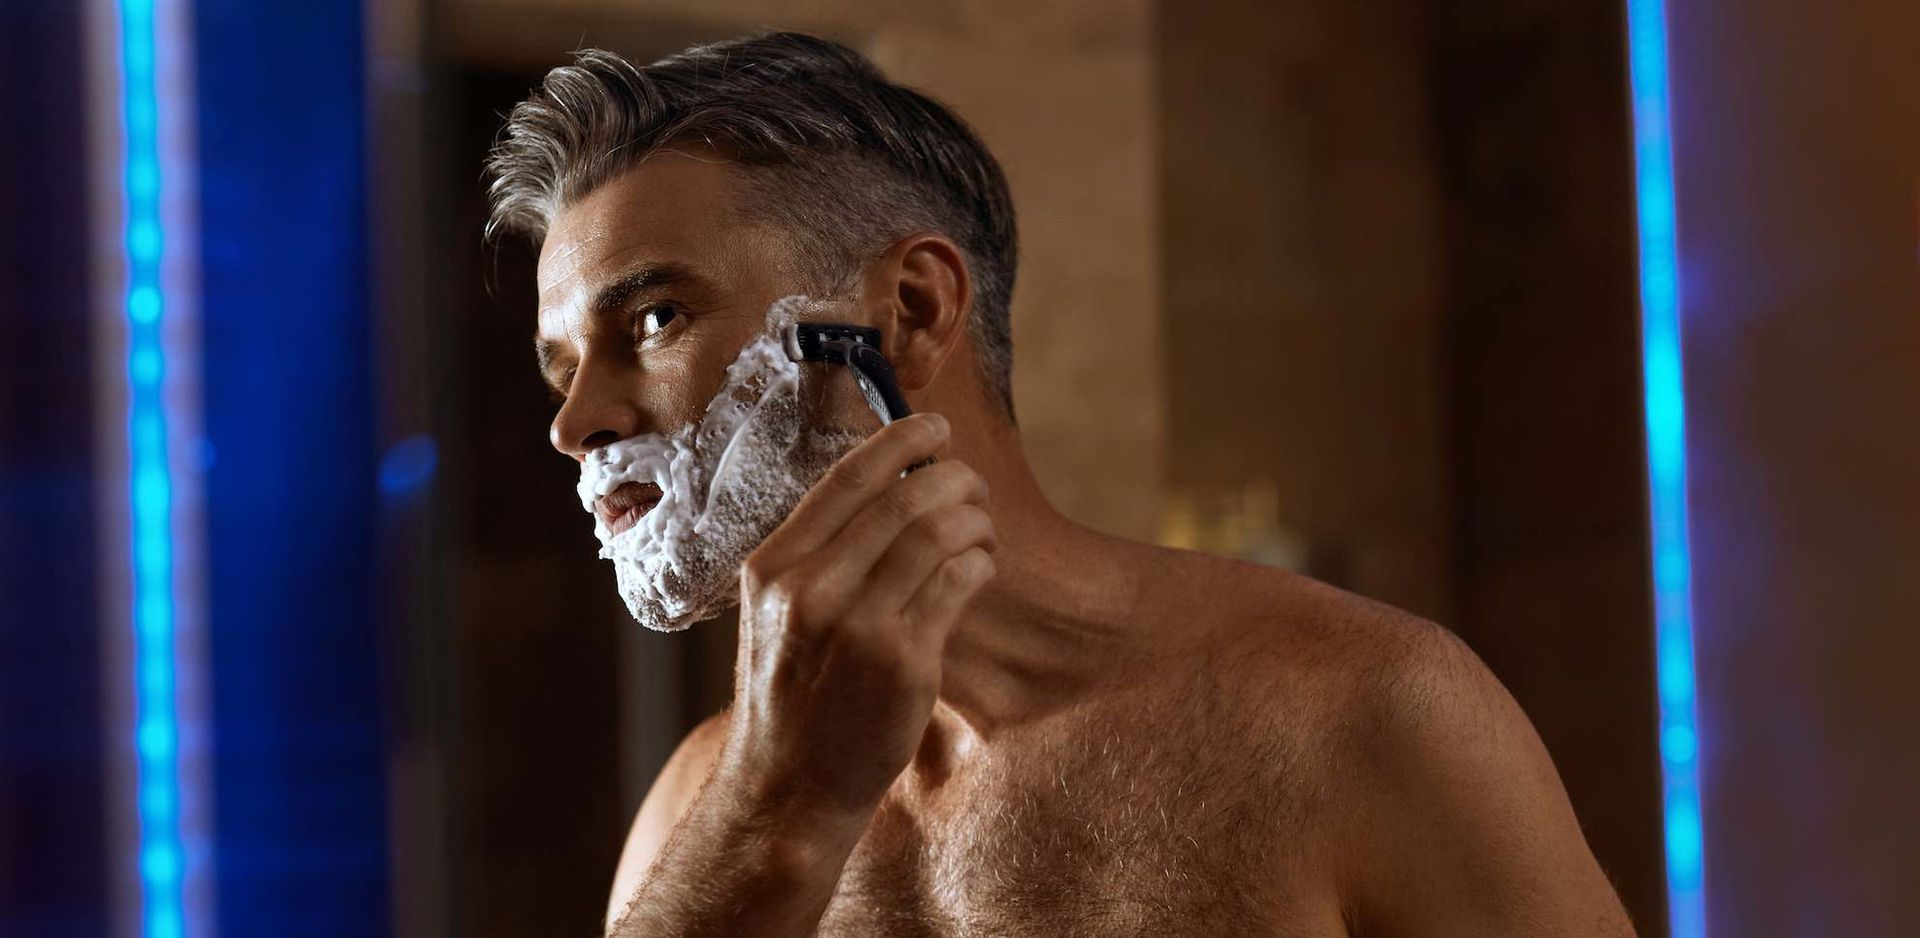 Shaving is One Thing Technology Can't Make Better » Dailygram ... The Business Network